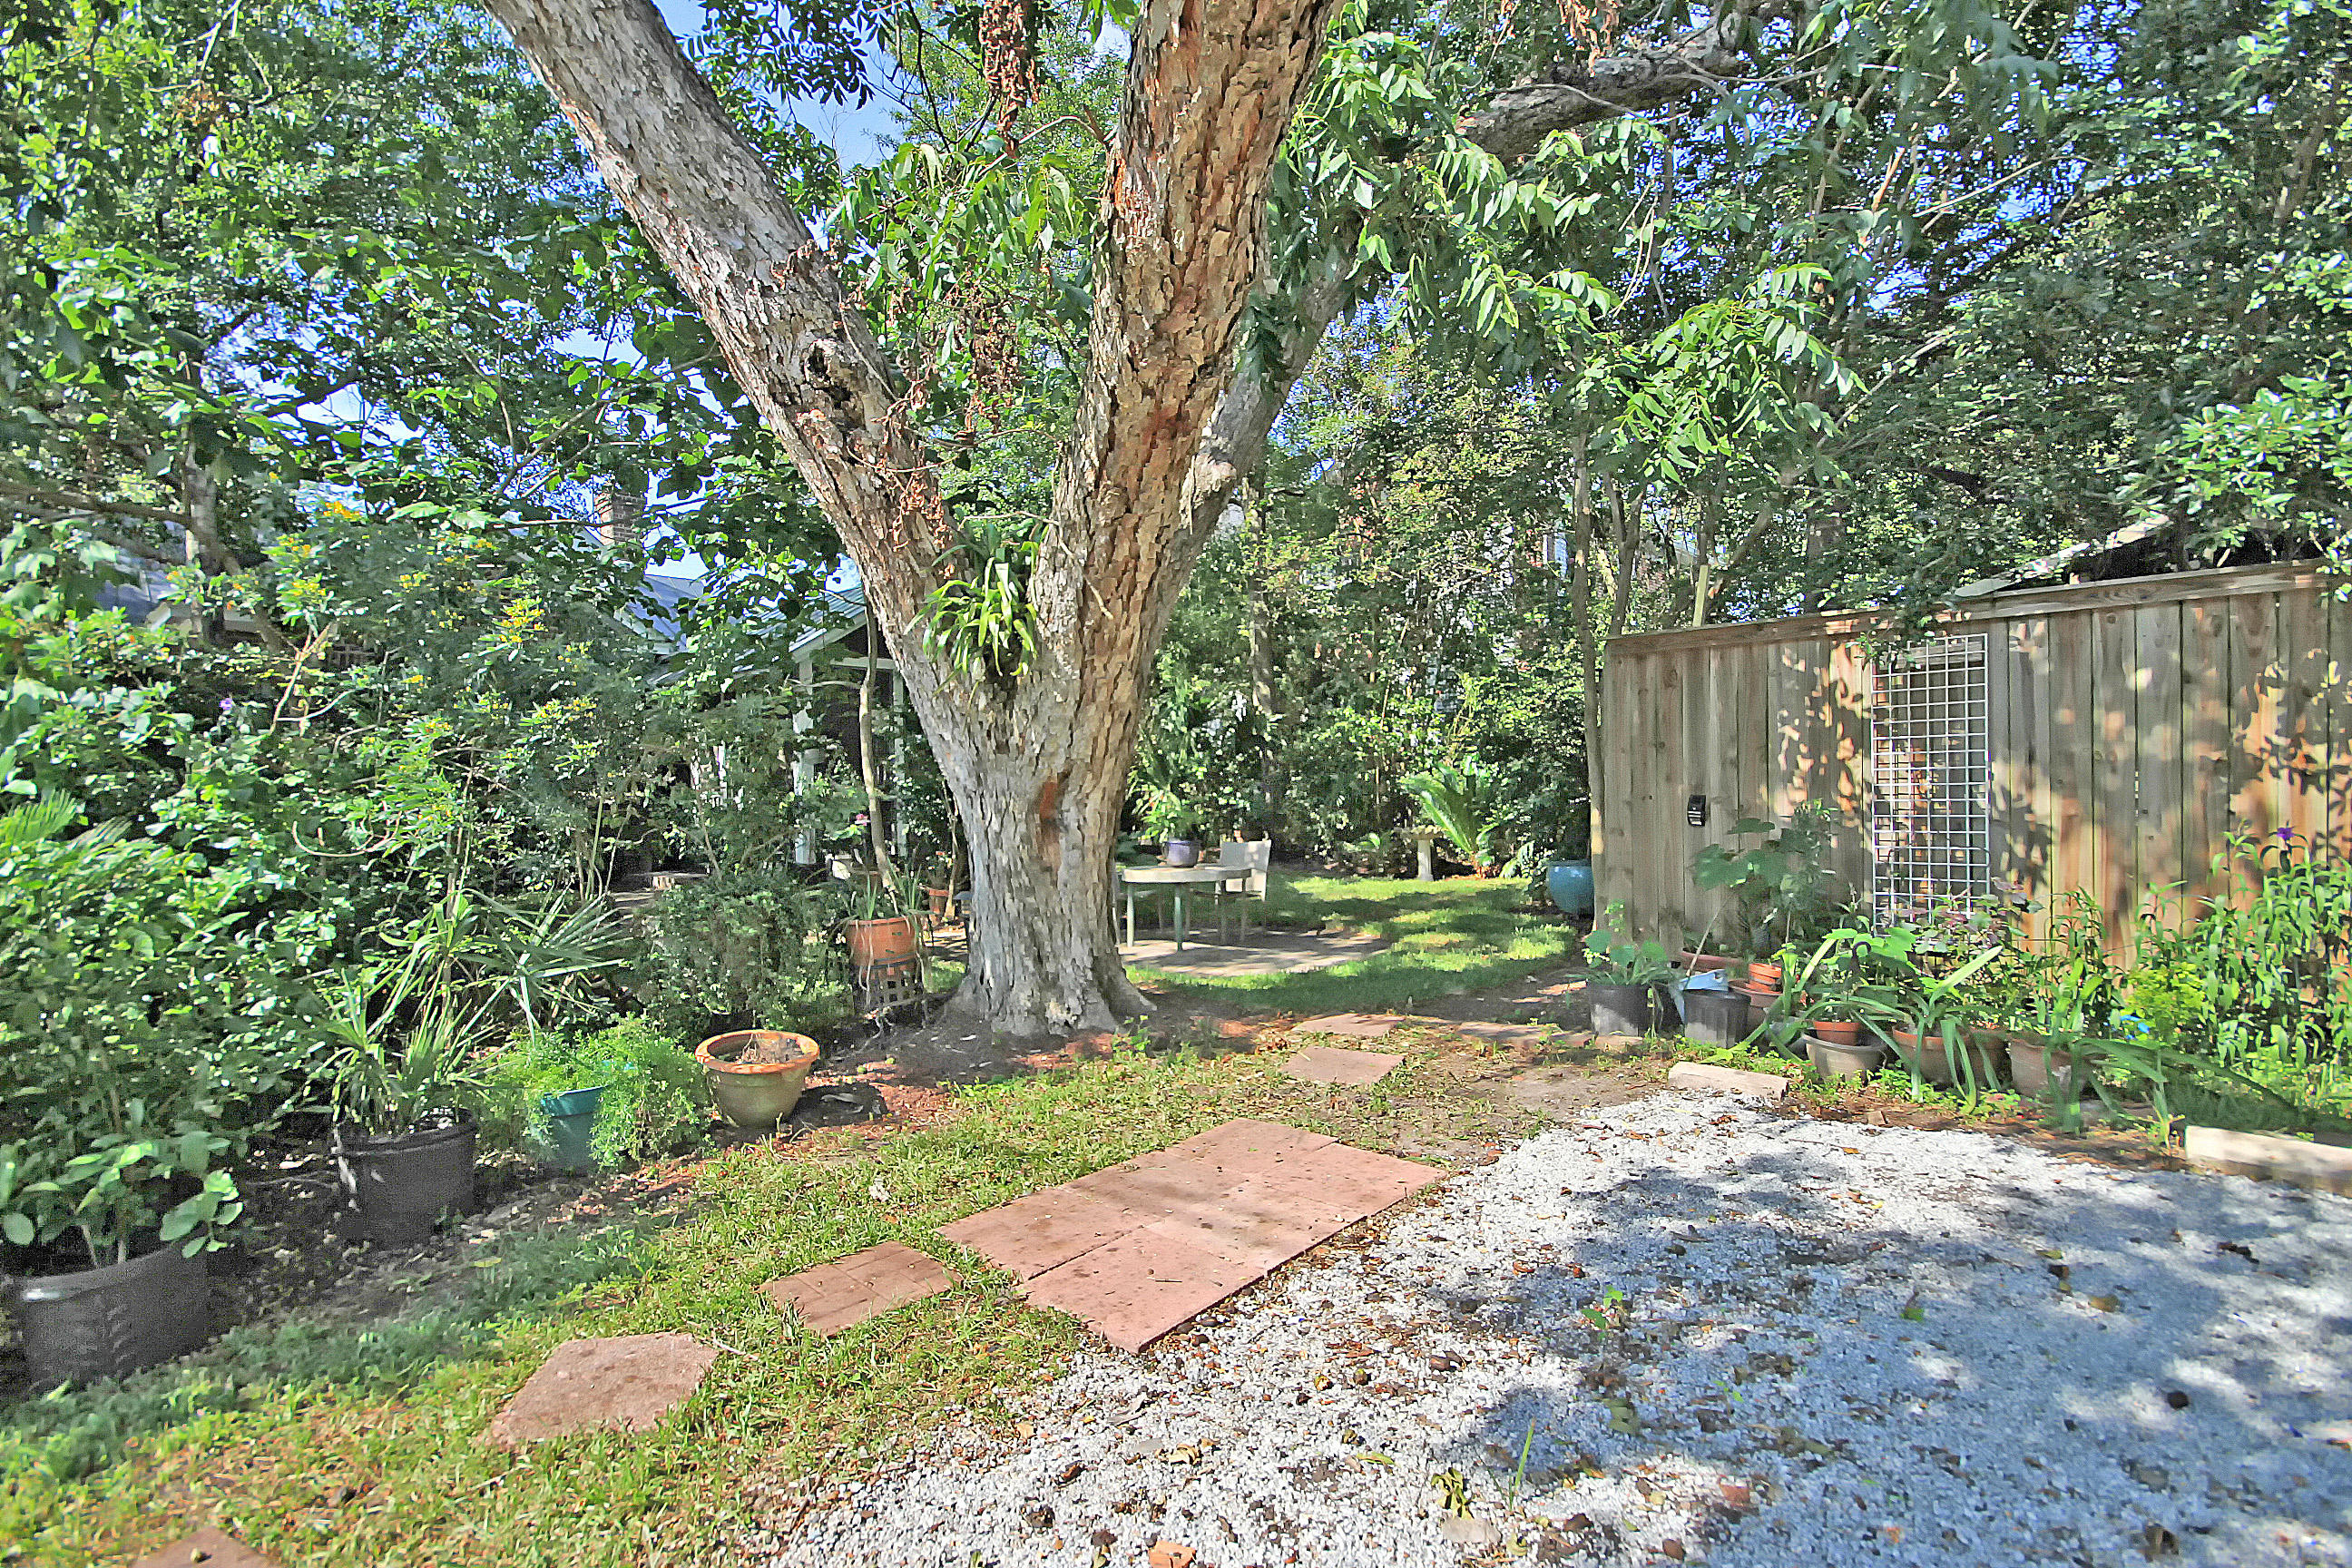 Photo of 55 Folly Rd Blvd, Charleston, SC 29407